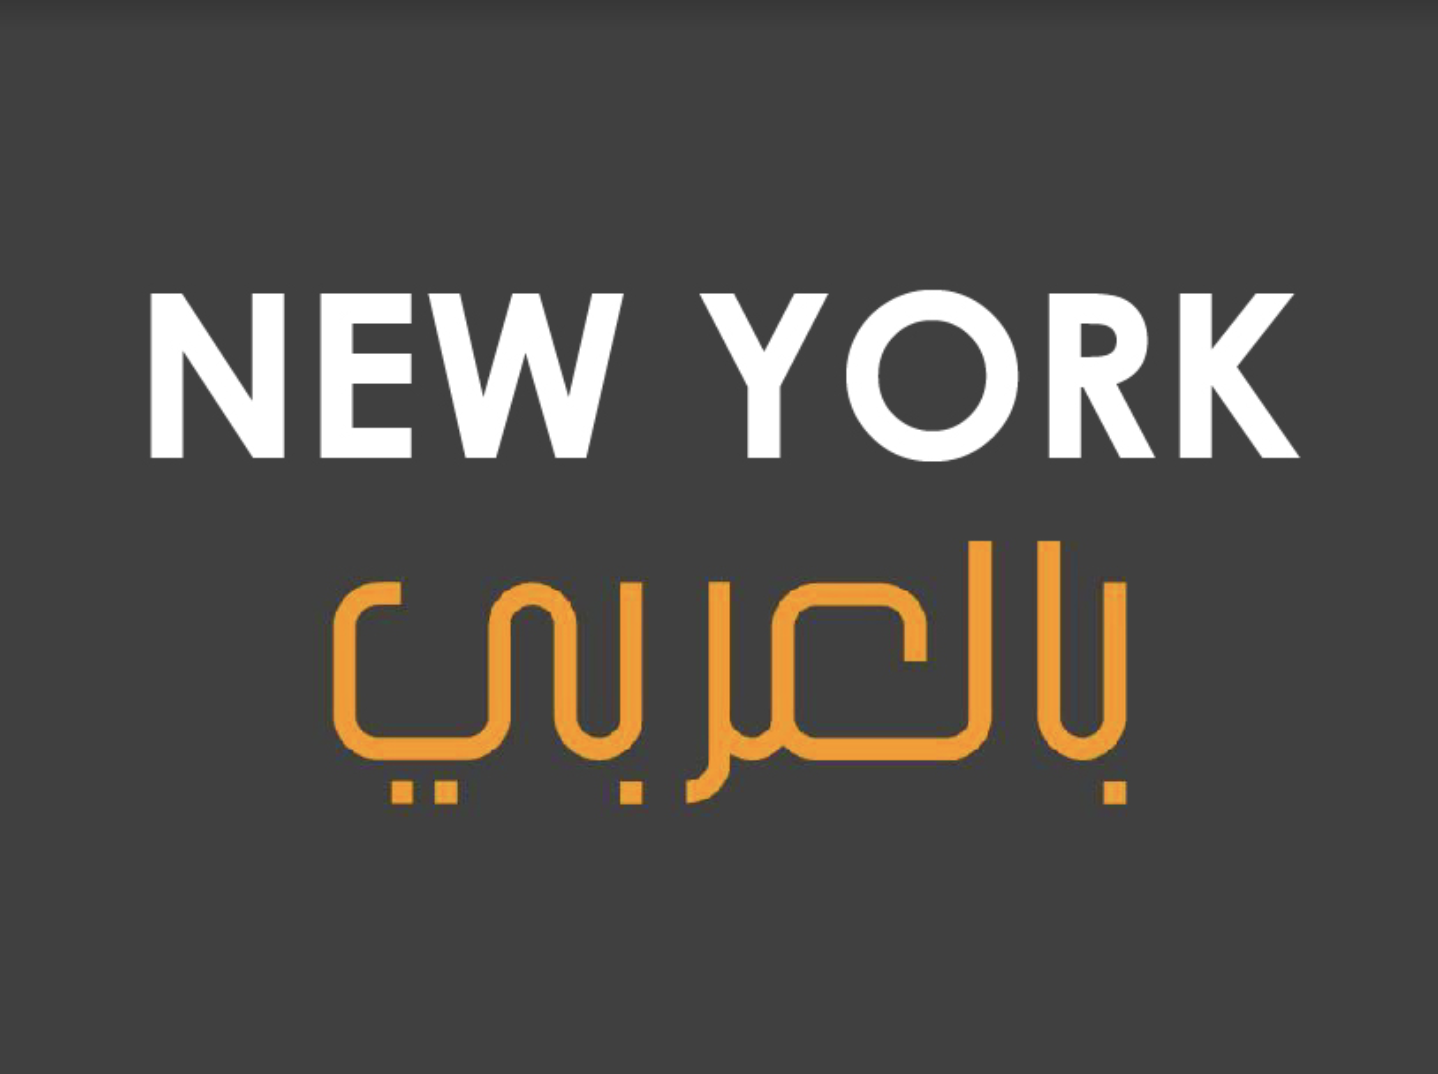 NYC in Arabic